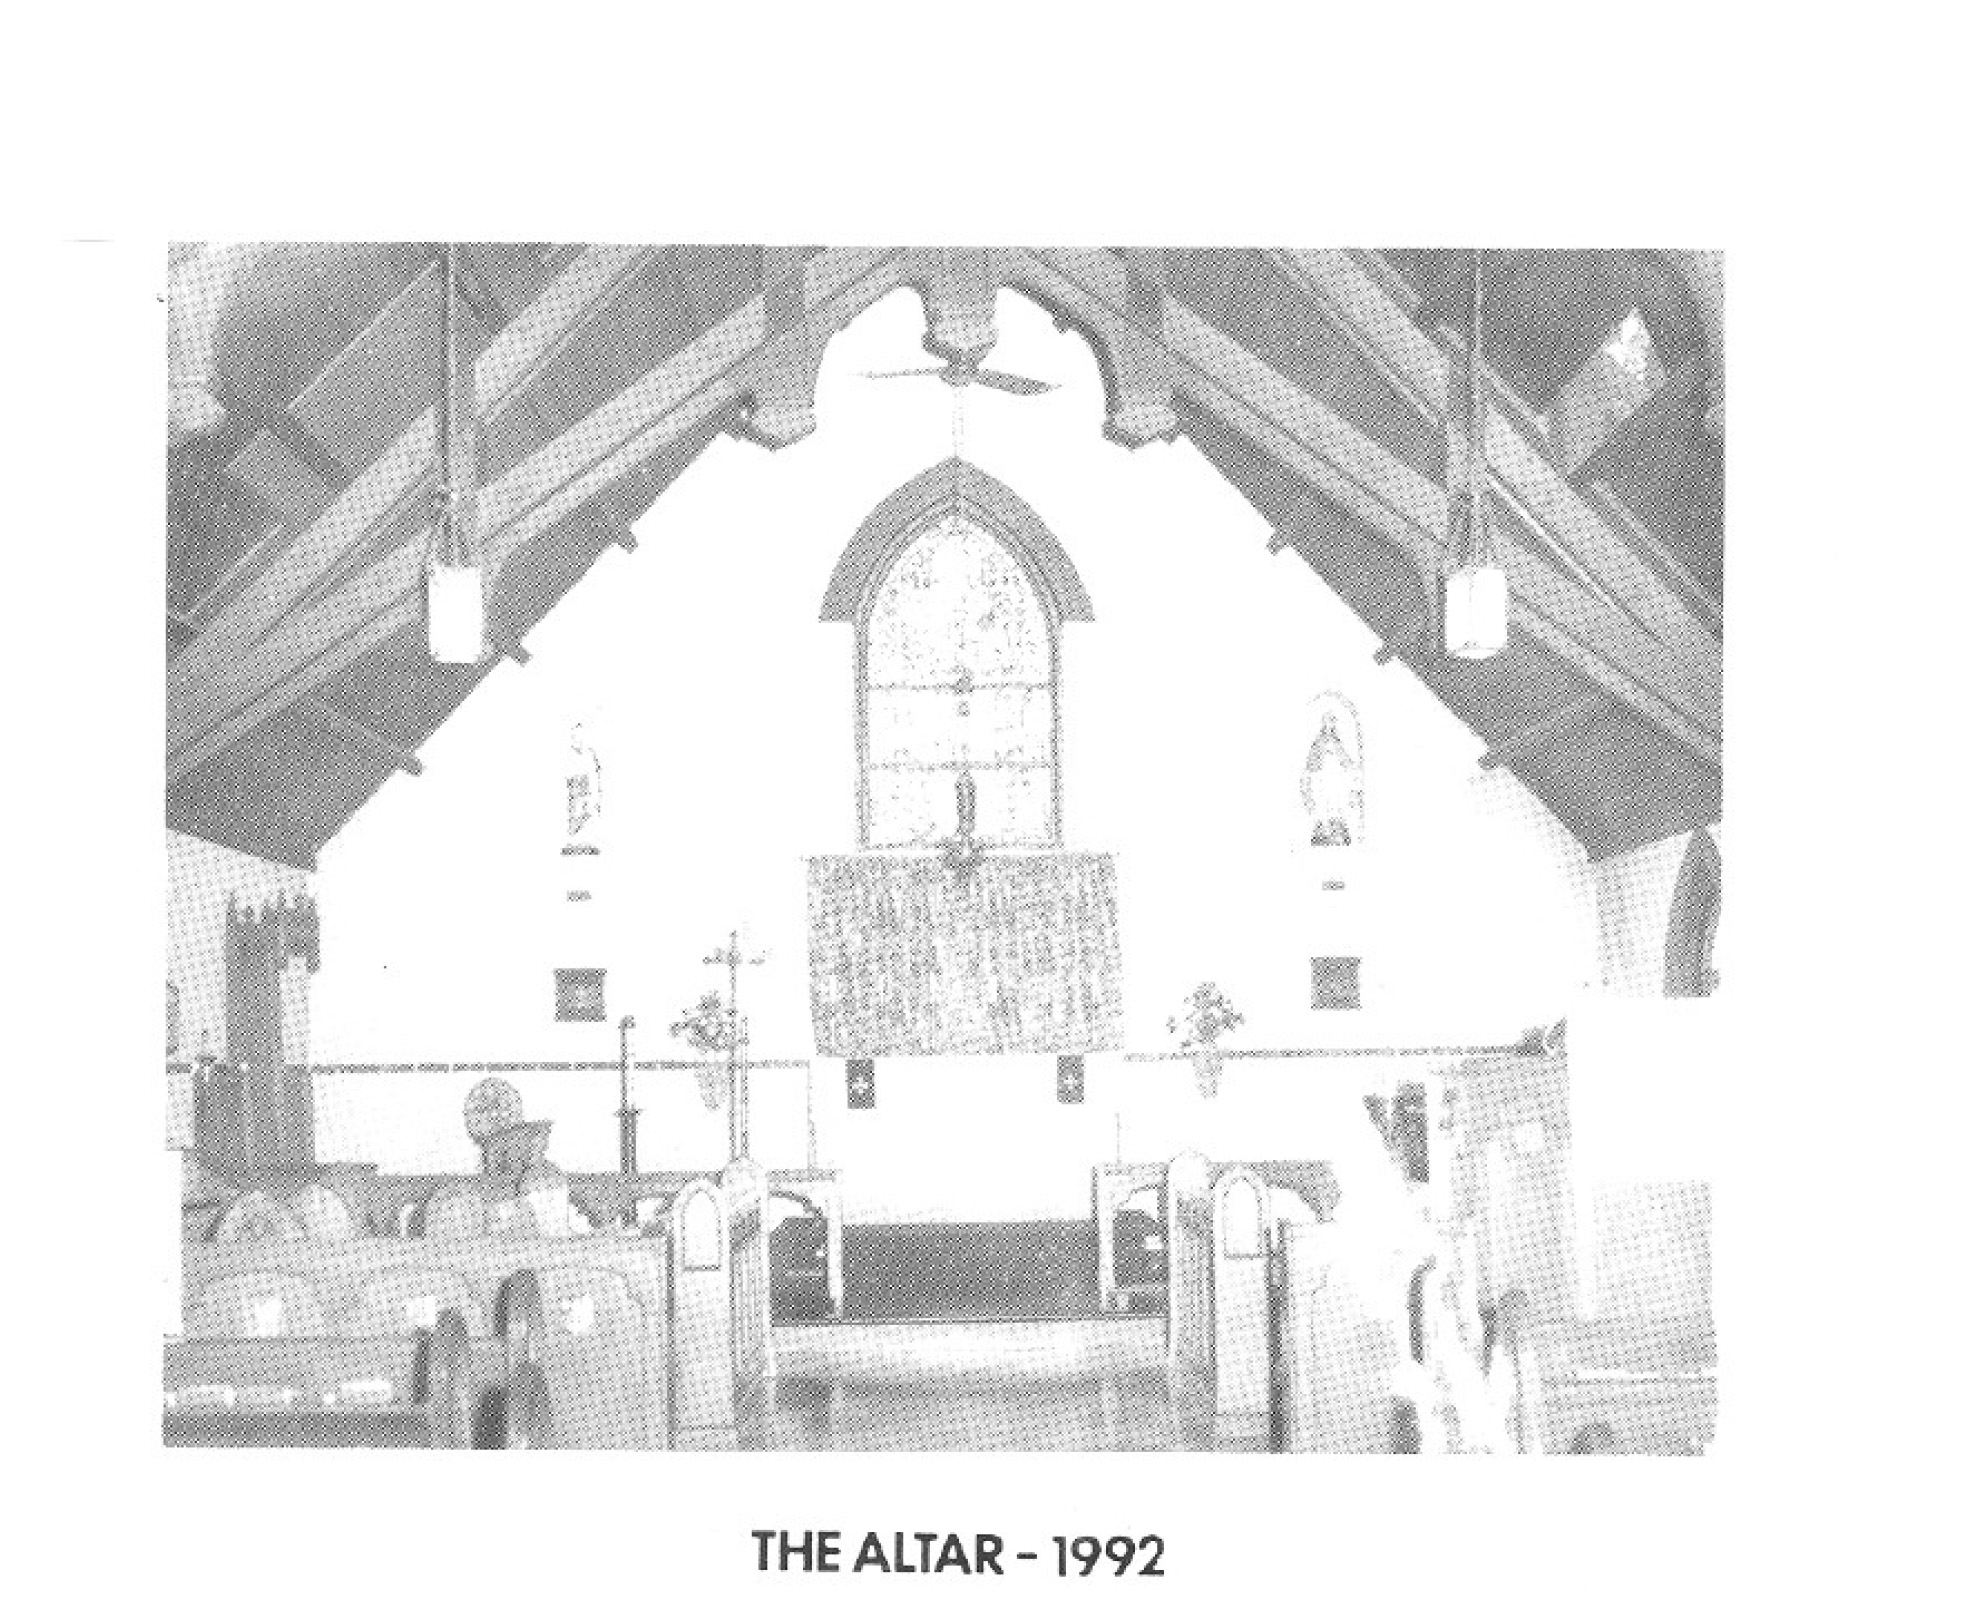 Microsoft Word - The Altar 1992.doc